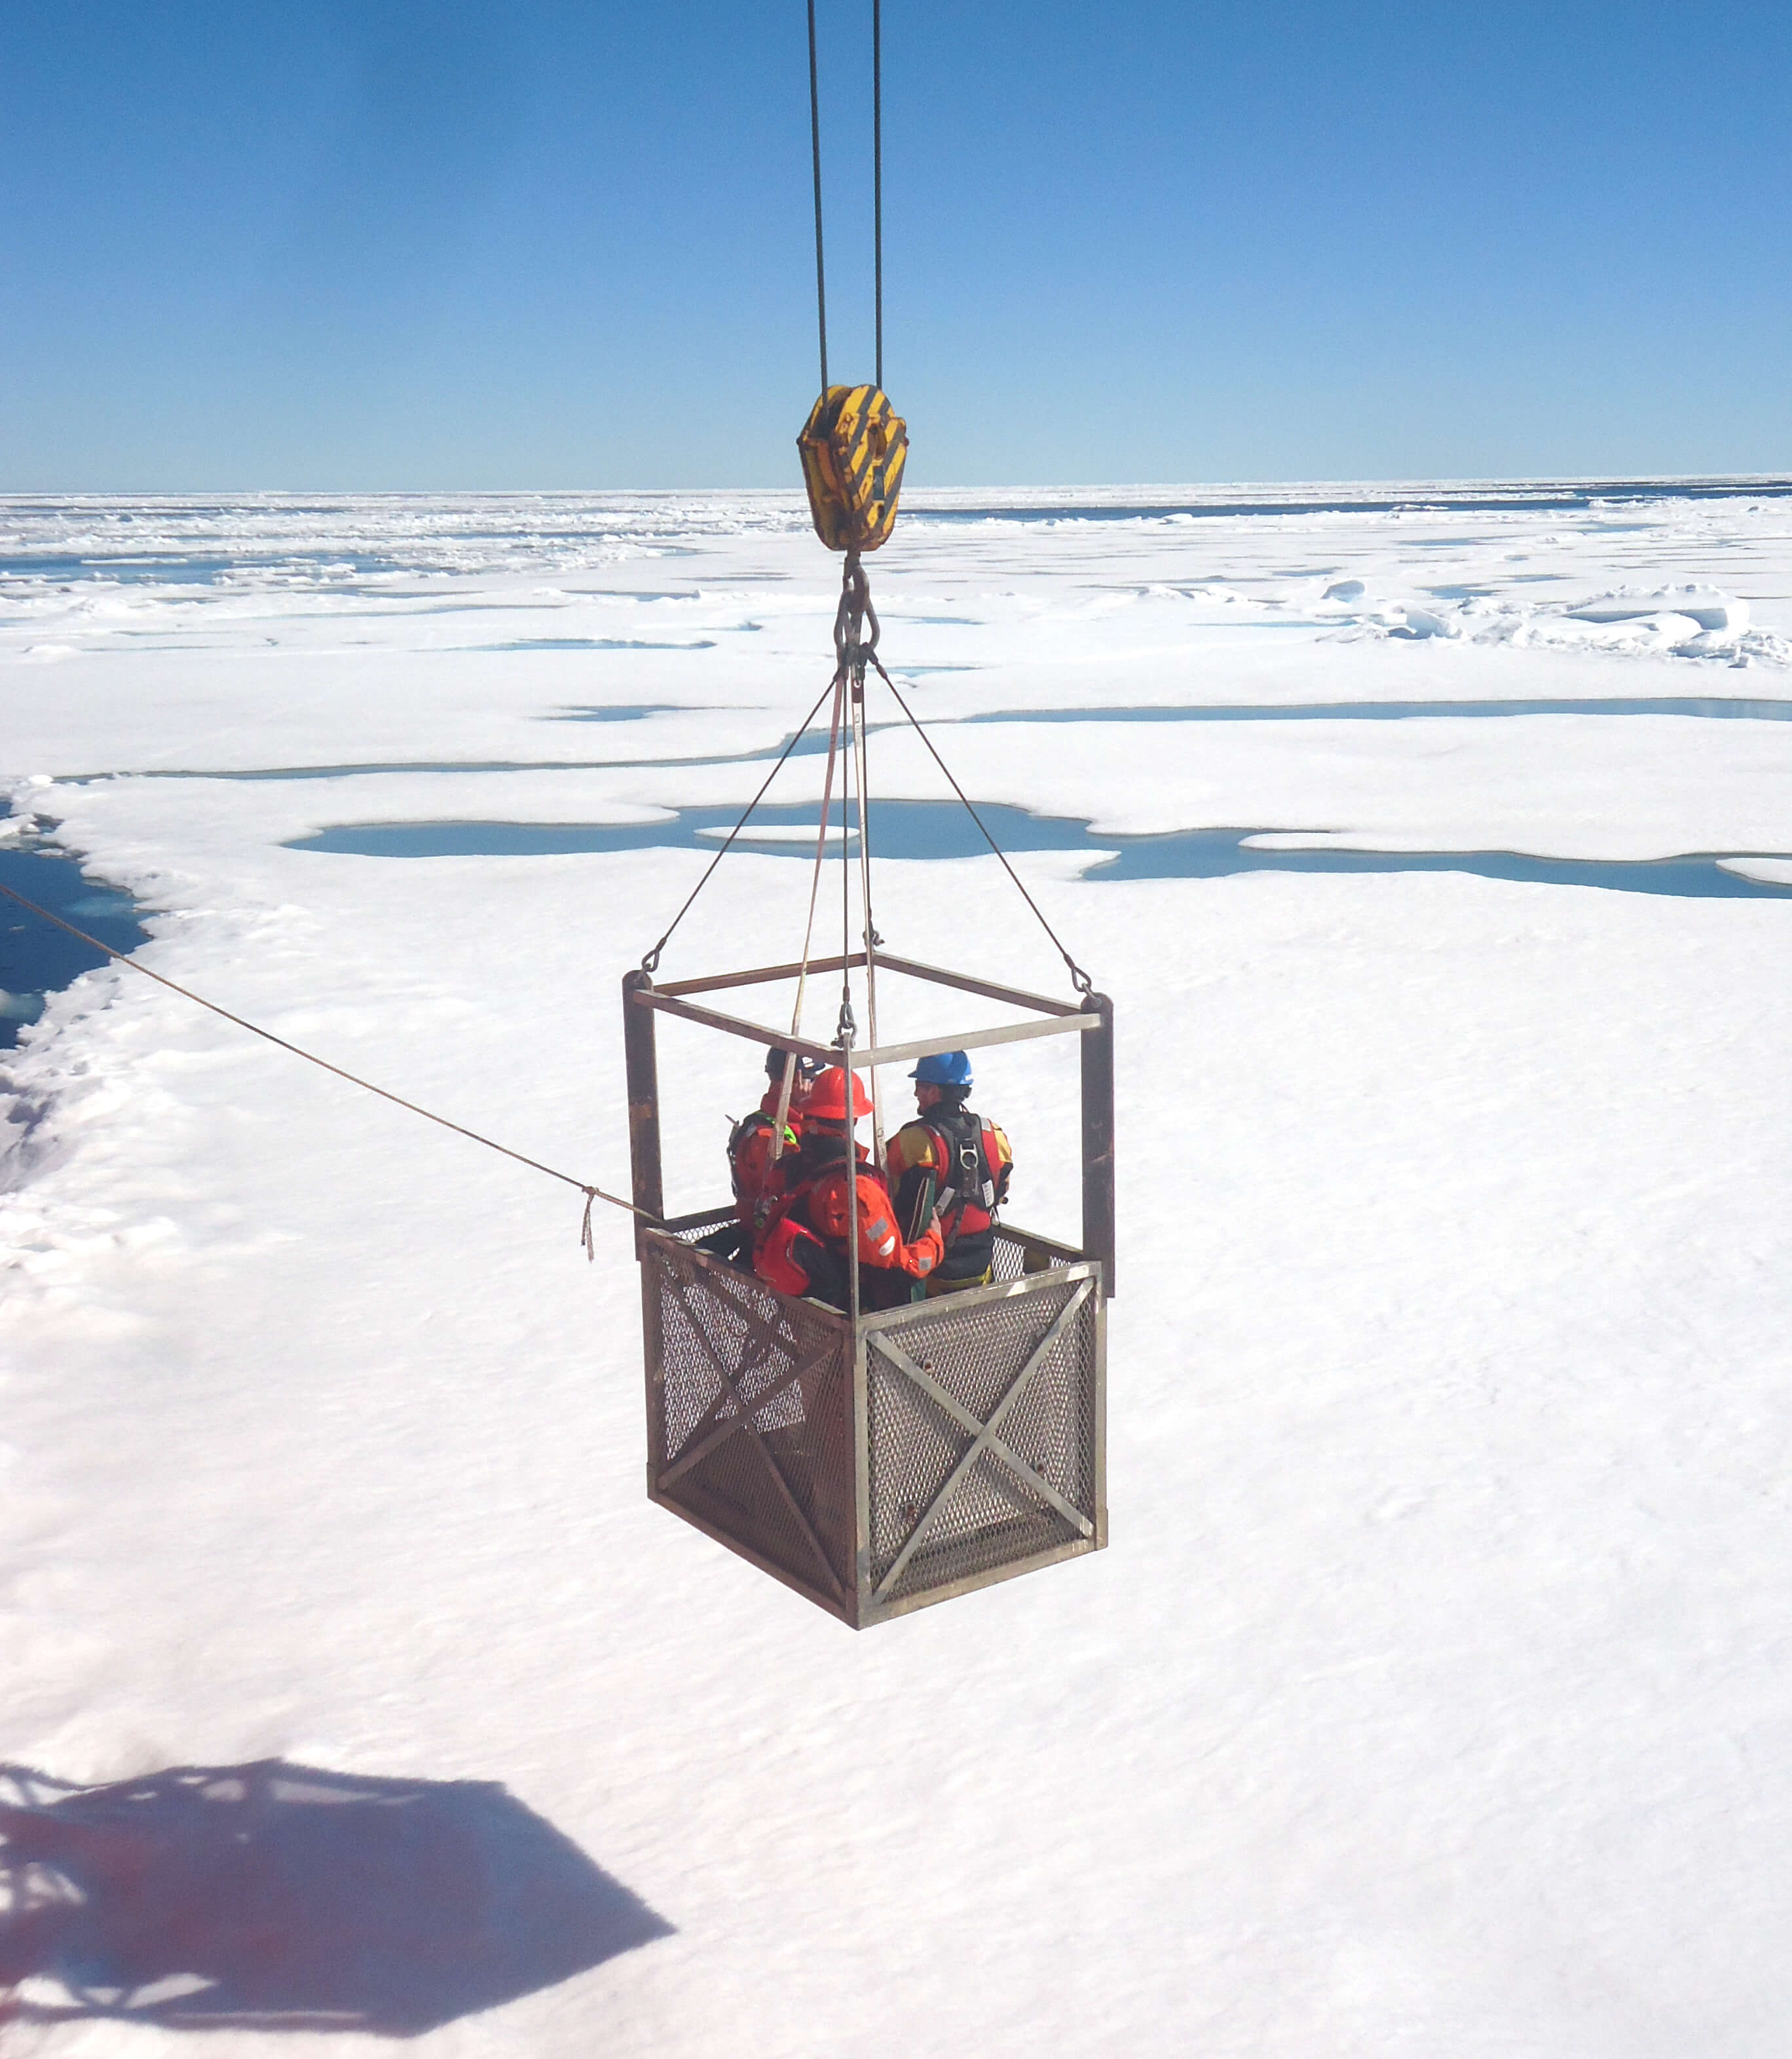 Science team going on sea ice - Sentinel North international phd school